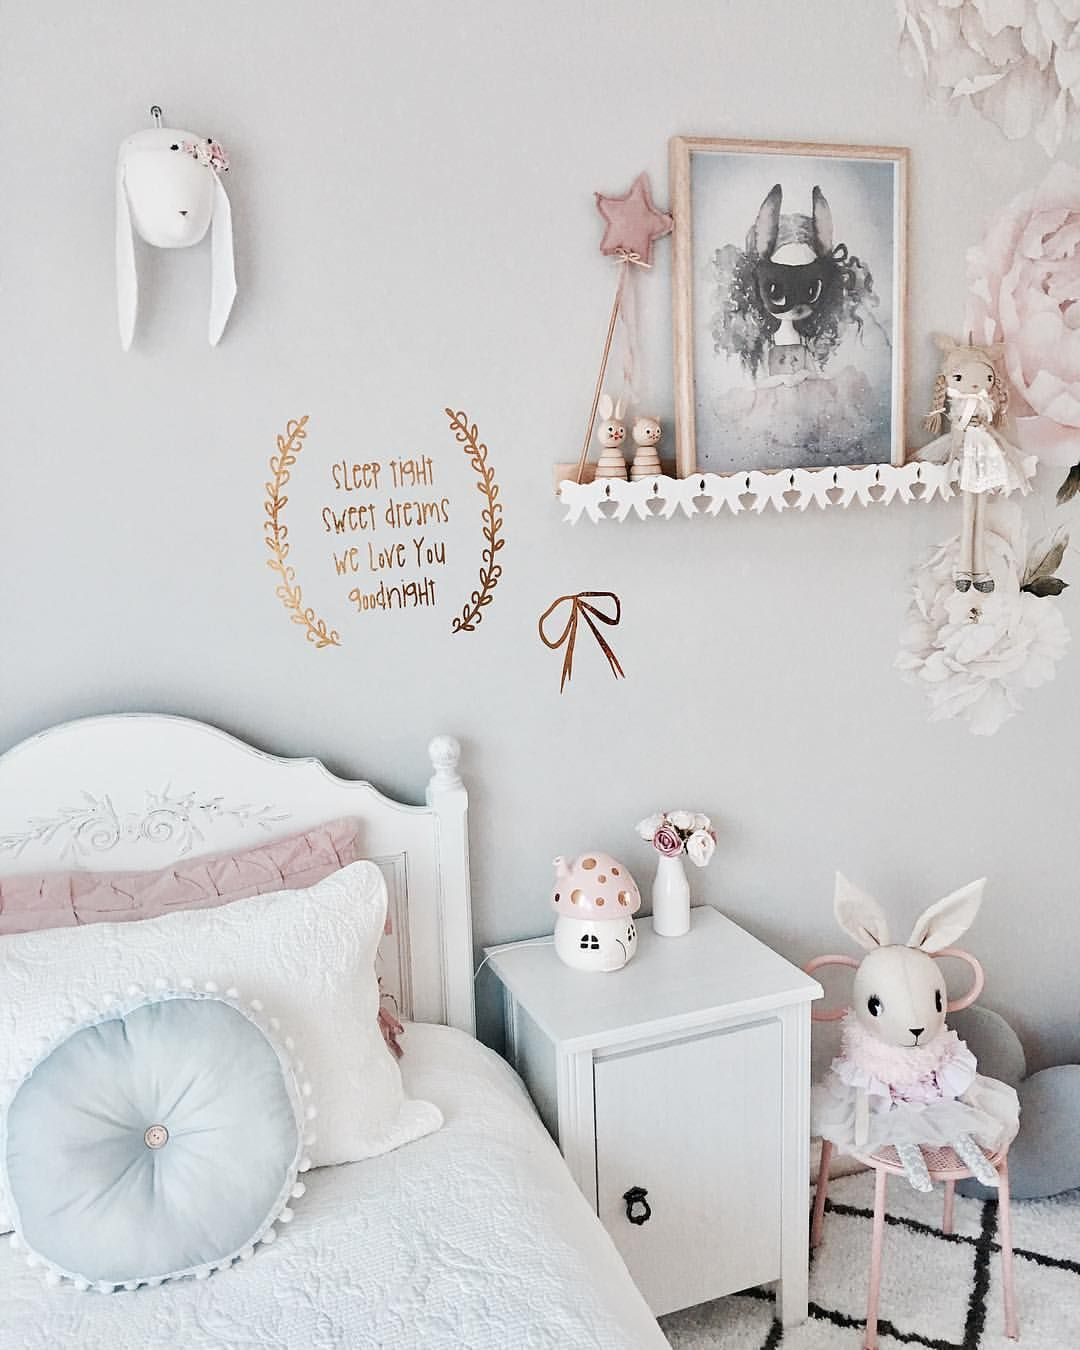 inspiration from instagram pastel girls room ideas pink and grey rh pinterest com